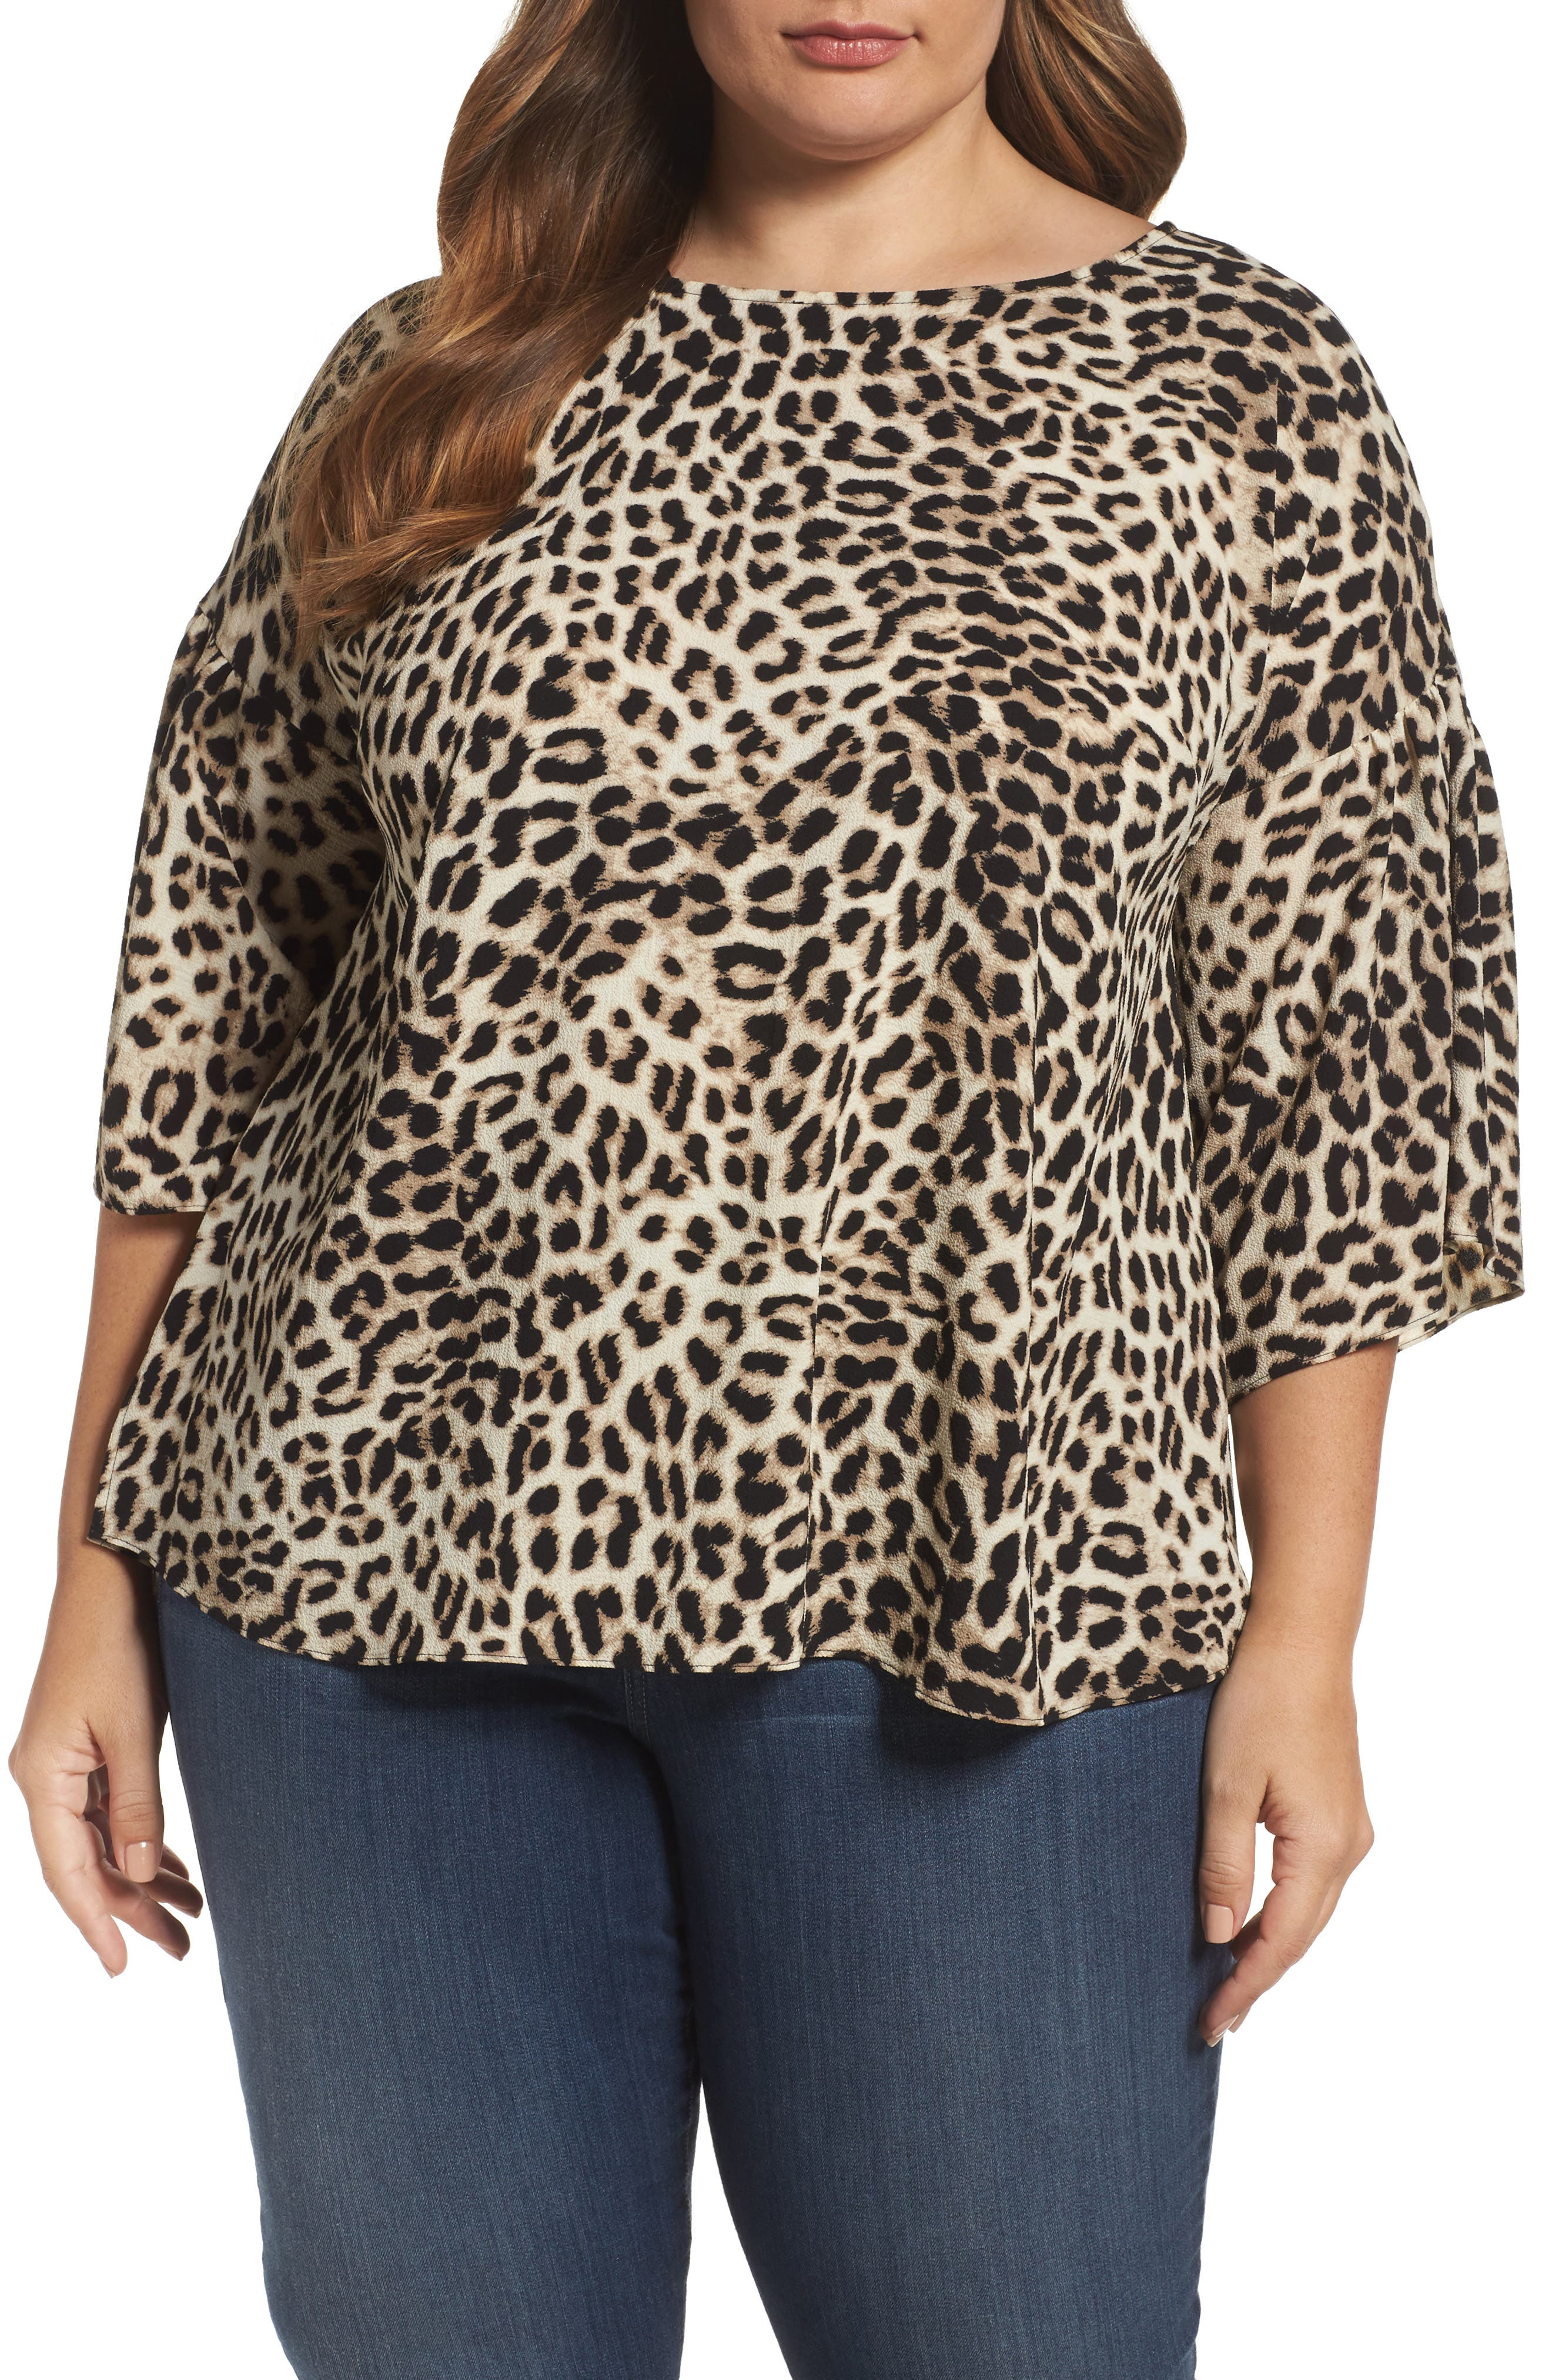 Vince Camuto Leopard Song Bell Sleeve Blouse (Plus Size)